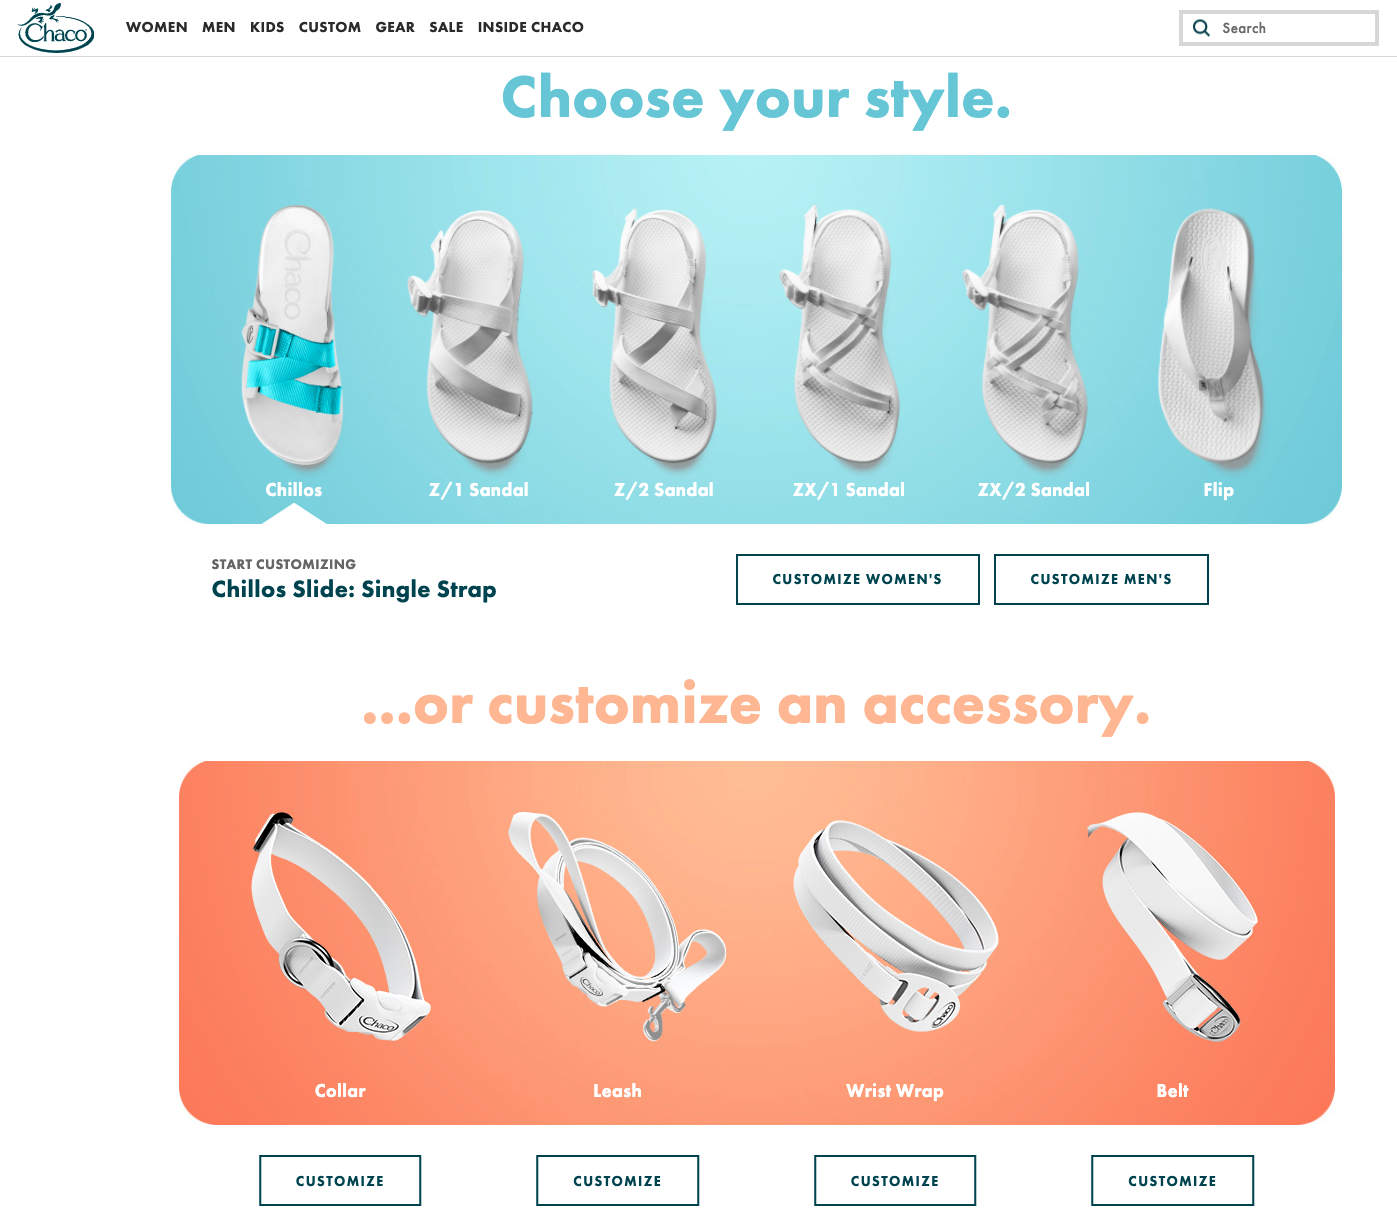 Chaco's product customization offering on their website